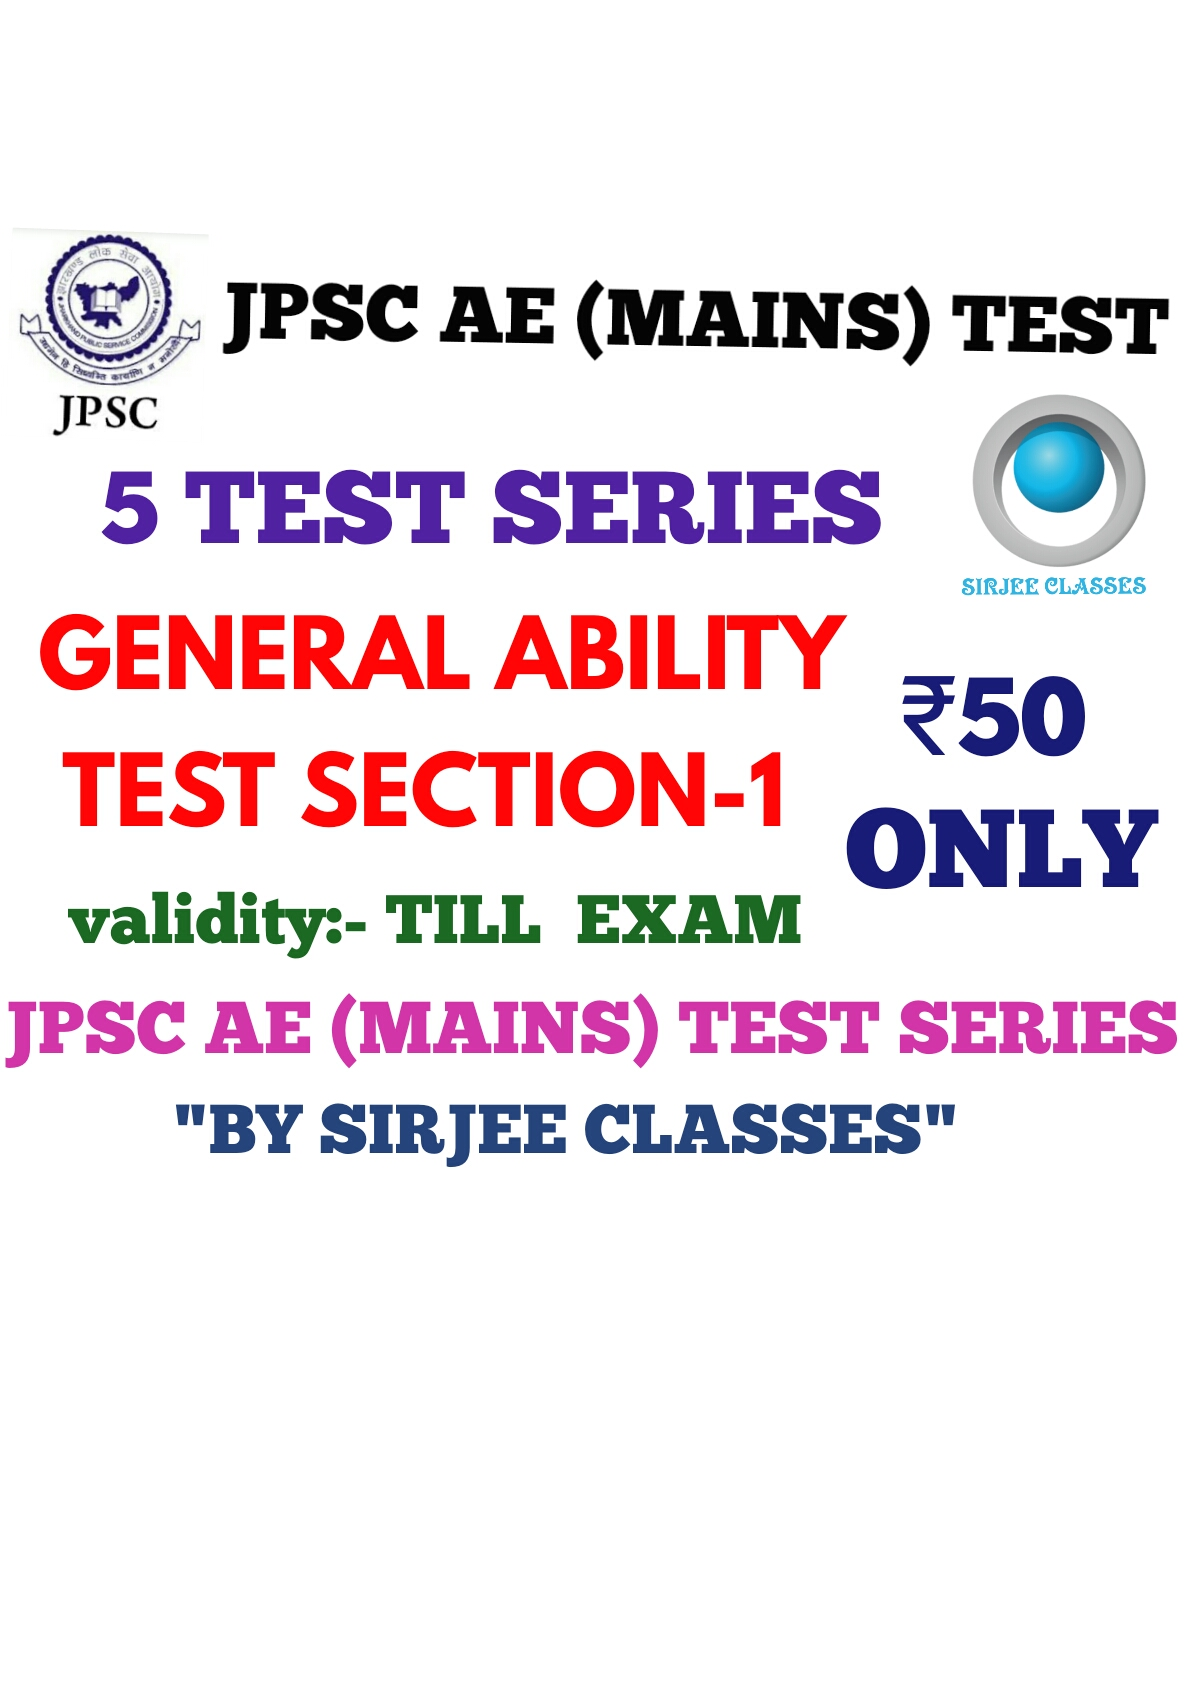 JPSC AE (MAINS) GENERAL ABILITY TEST SERIES